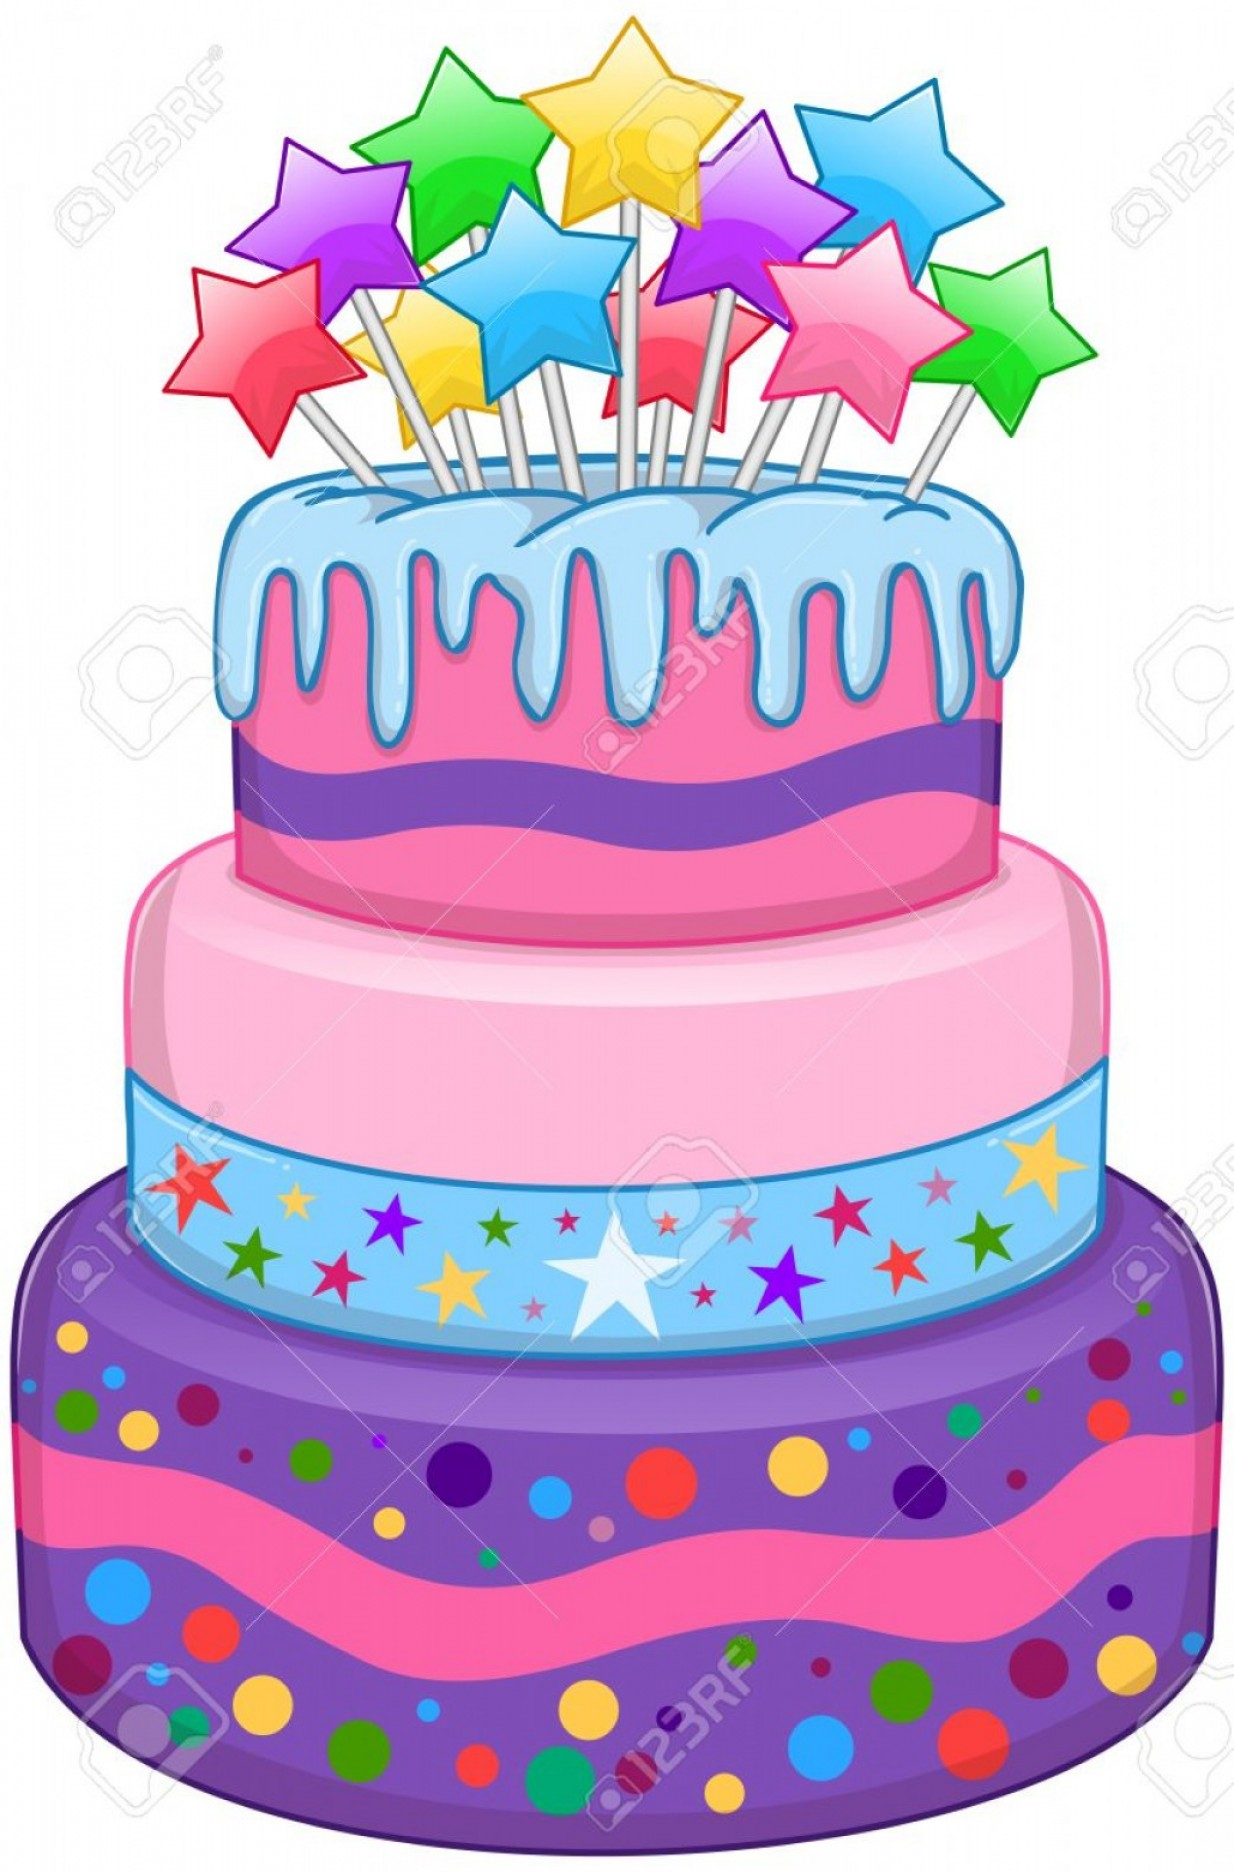 Photostock Vector Illustration Of Tiers Birthday Cake With Colorful ... image freeuse library